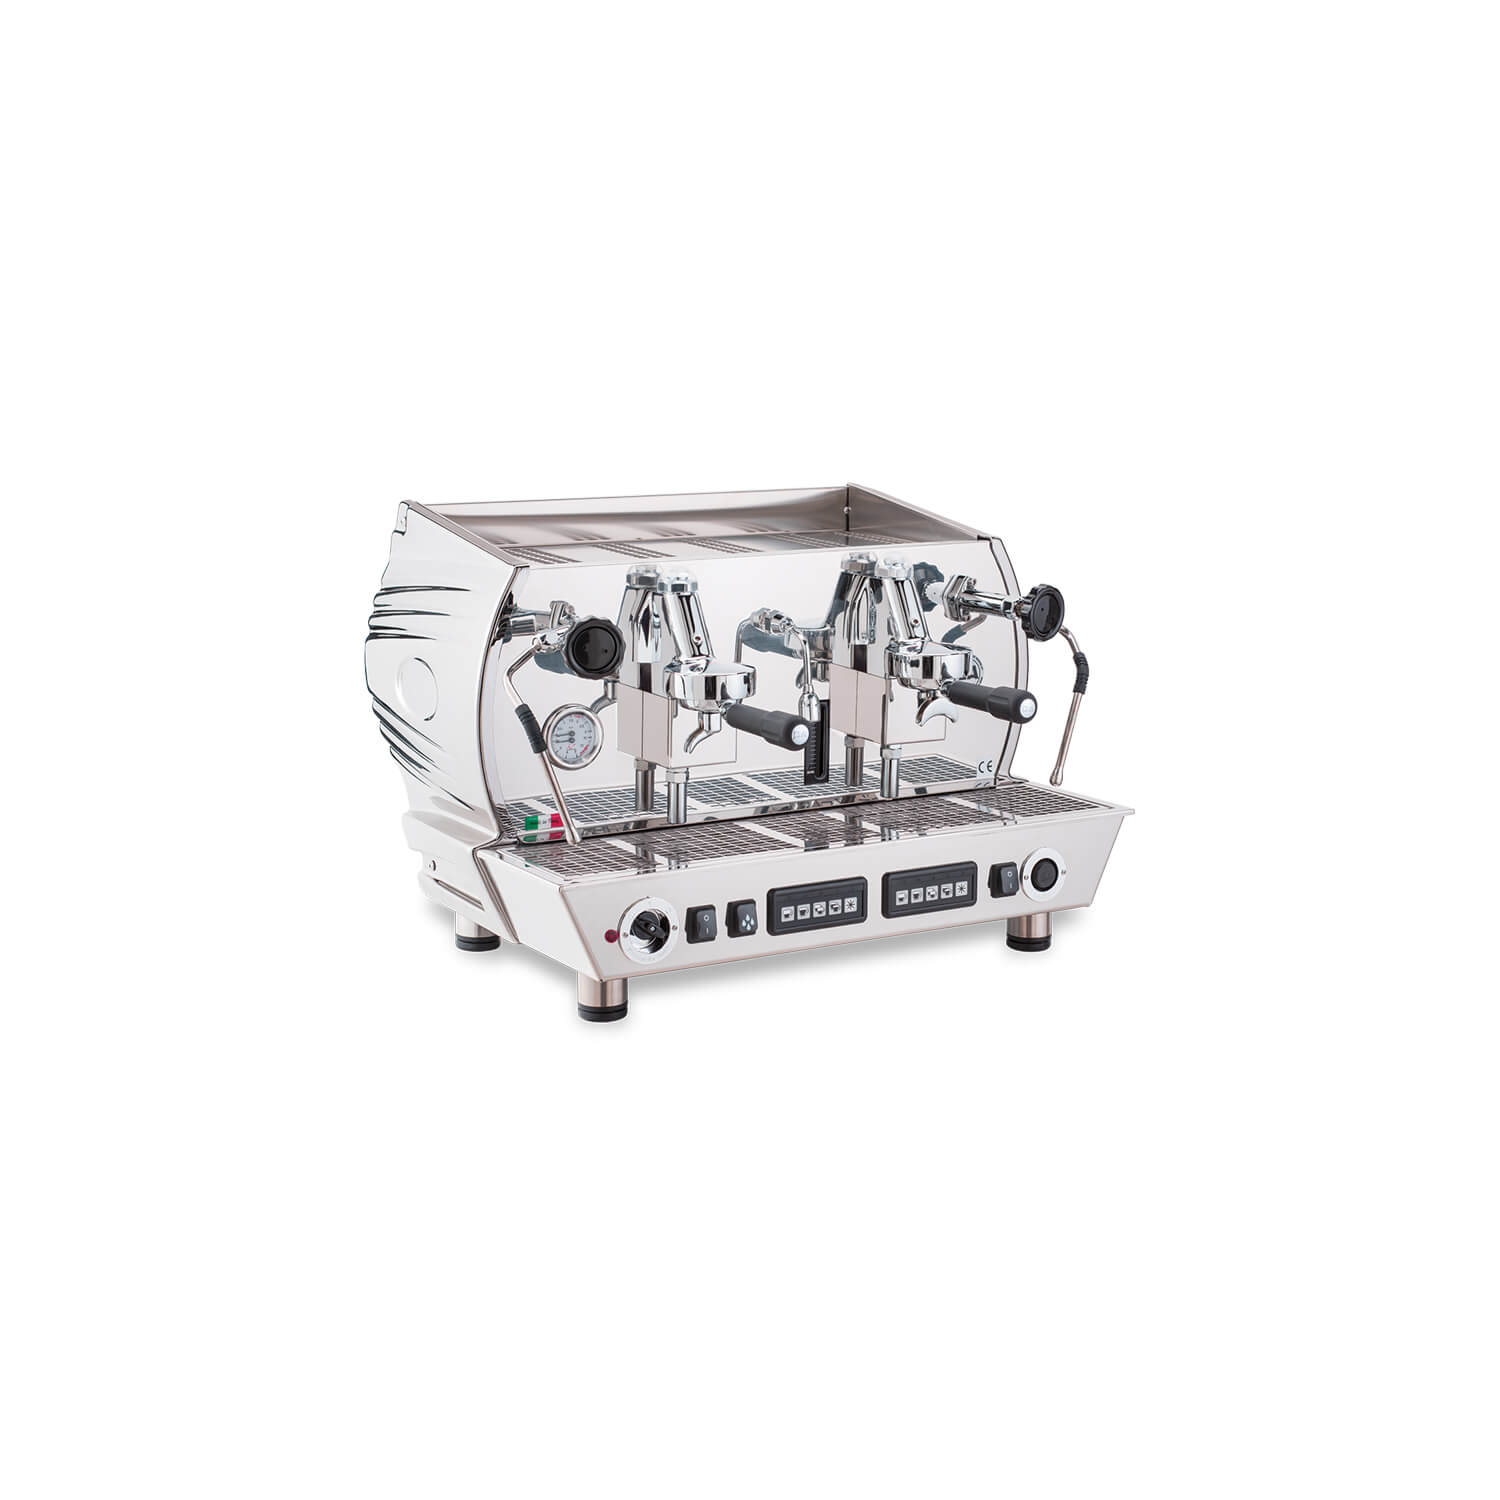 Nuova Era - Espressomachine - Altea Vintage 2-groeps